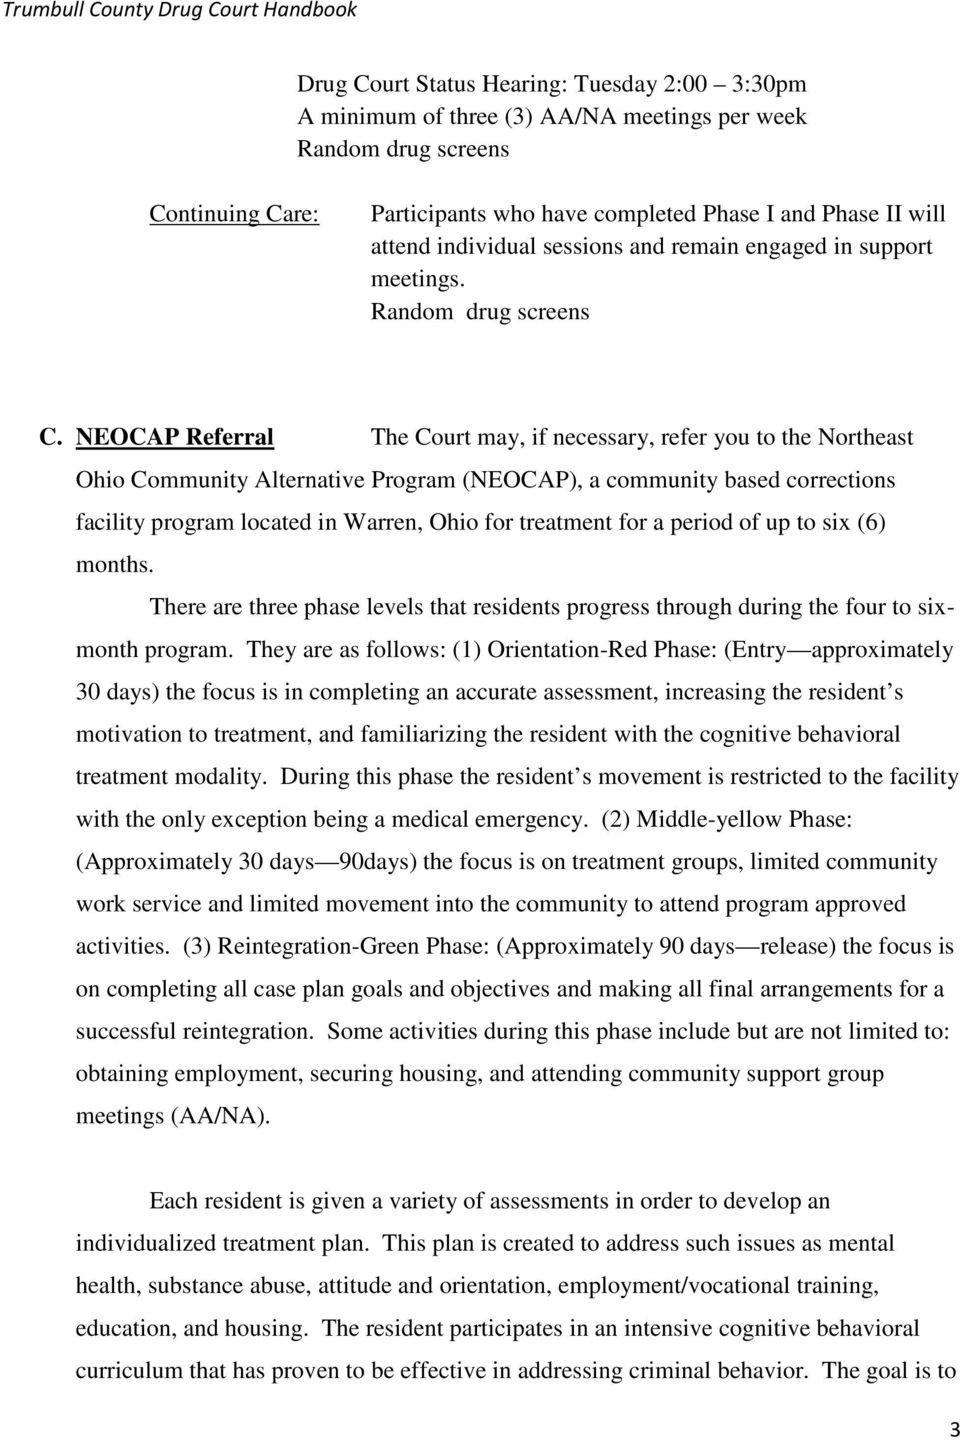 NEOCAP Referral The Court may, if necessary, refer you to the Northeast Ohio Community Alternative Program (NEOCAP), a community based corrections facility program located in Warren, Ohio for